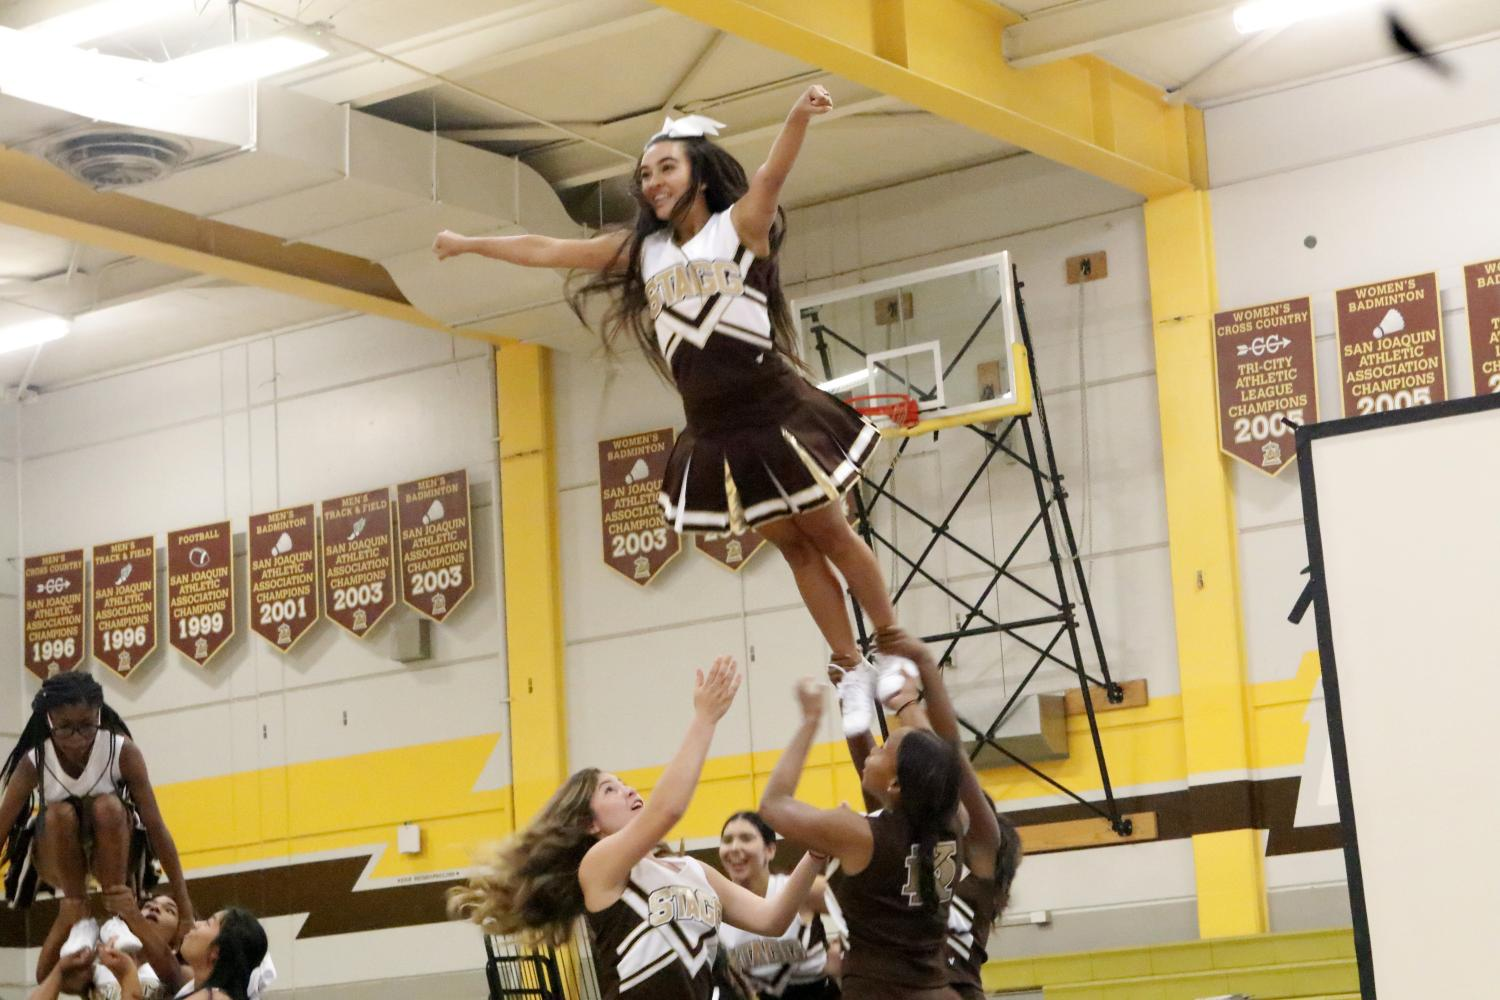 Alyzea Deputron is doing a super stunt during the cheer performance.